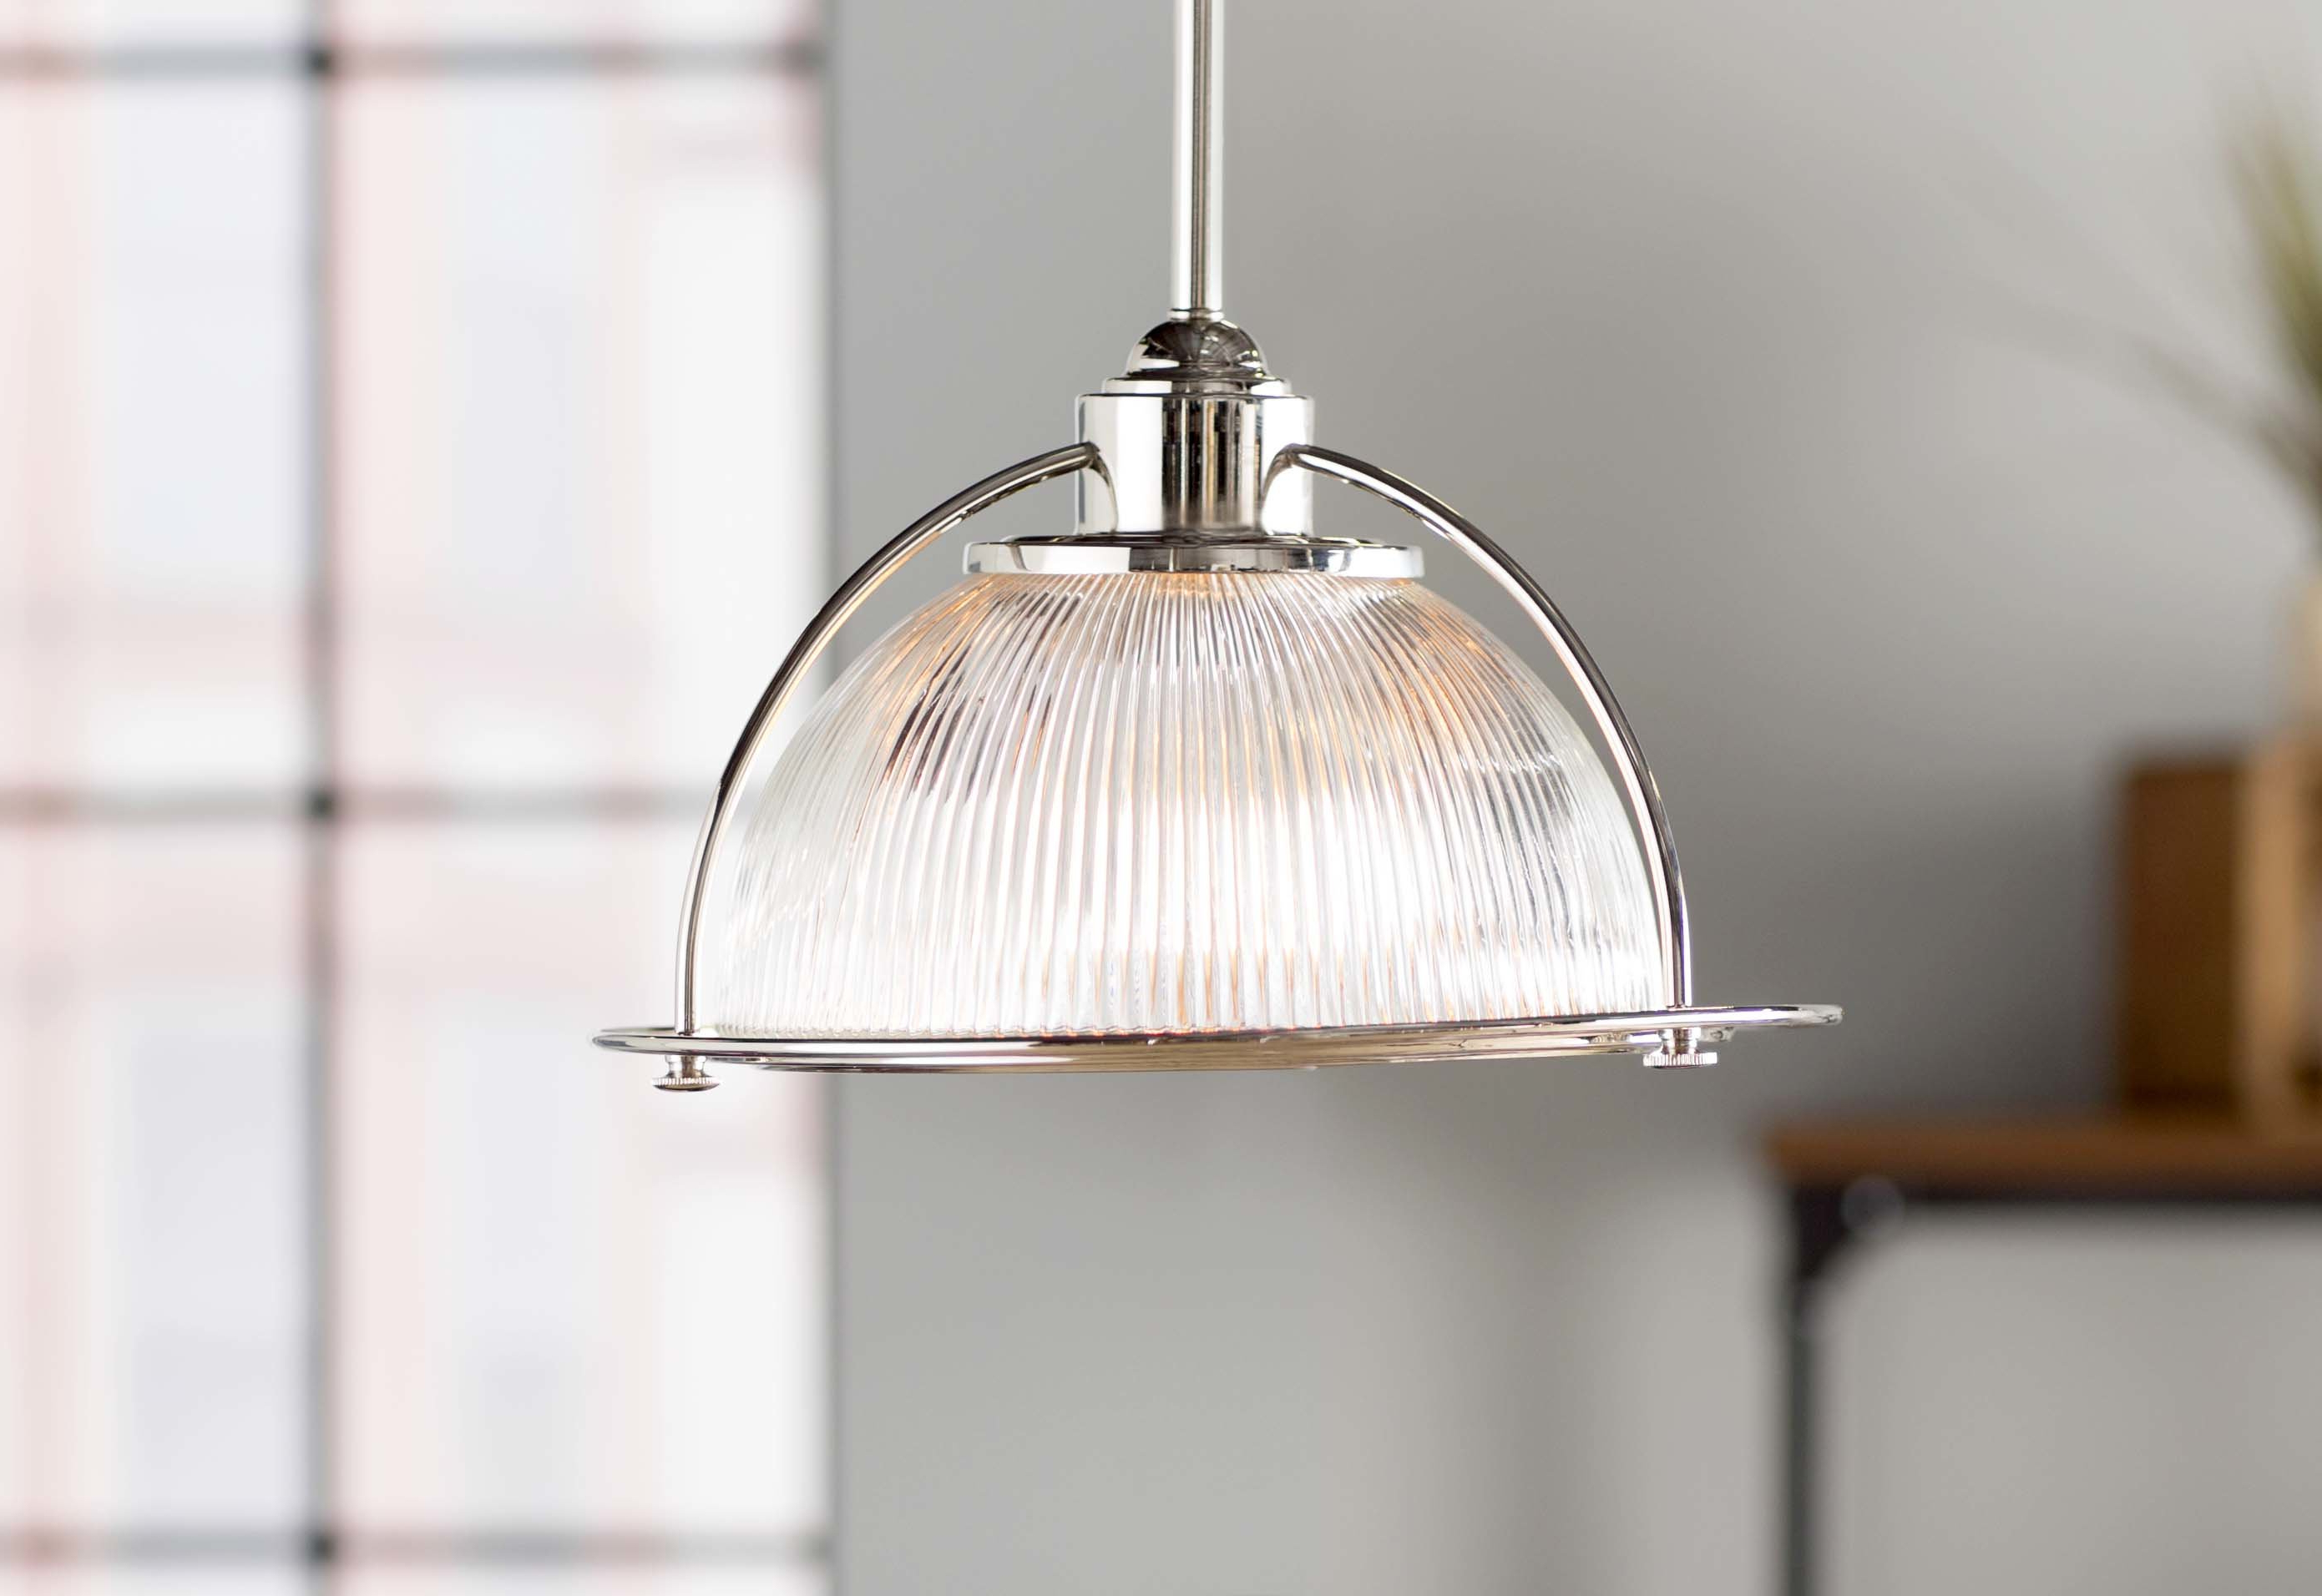 Brickford 1 Light Single Dome Pendant For Widely Used Granville 2 Light Single Dome Pendants (View 3 of 25)